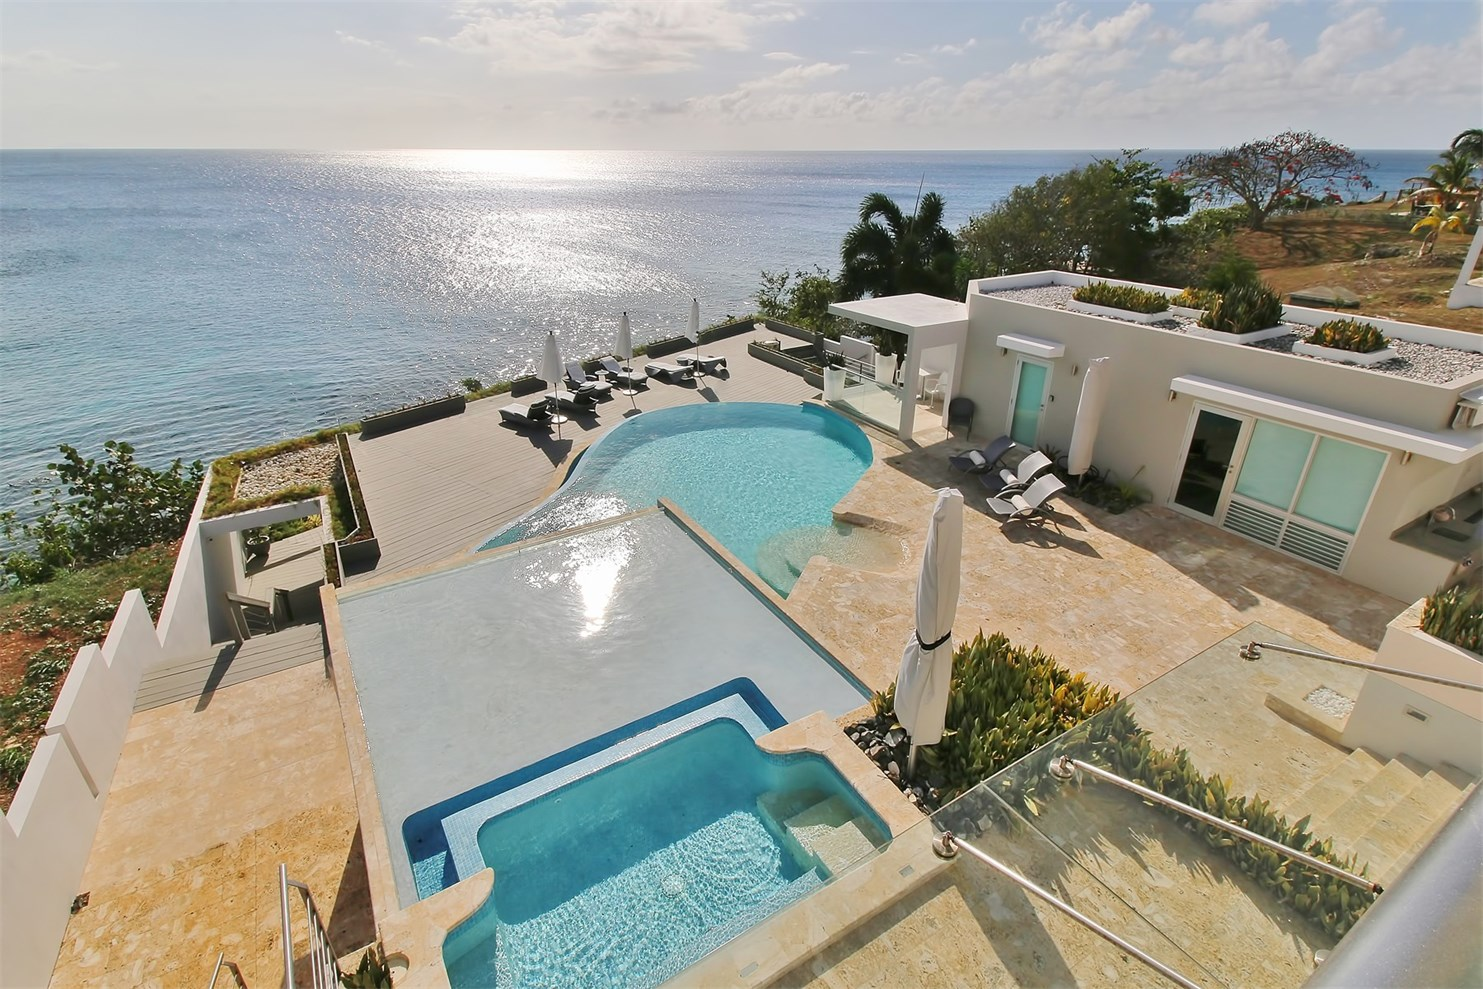 Beach Houses For Sale In Aguadilla Puerto Rico